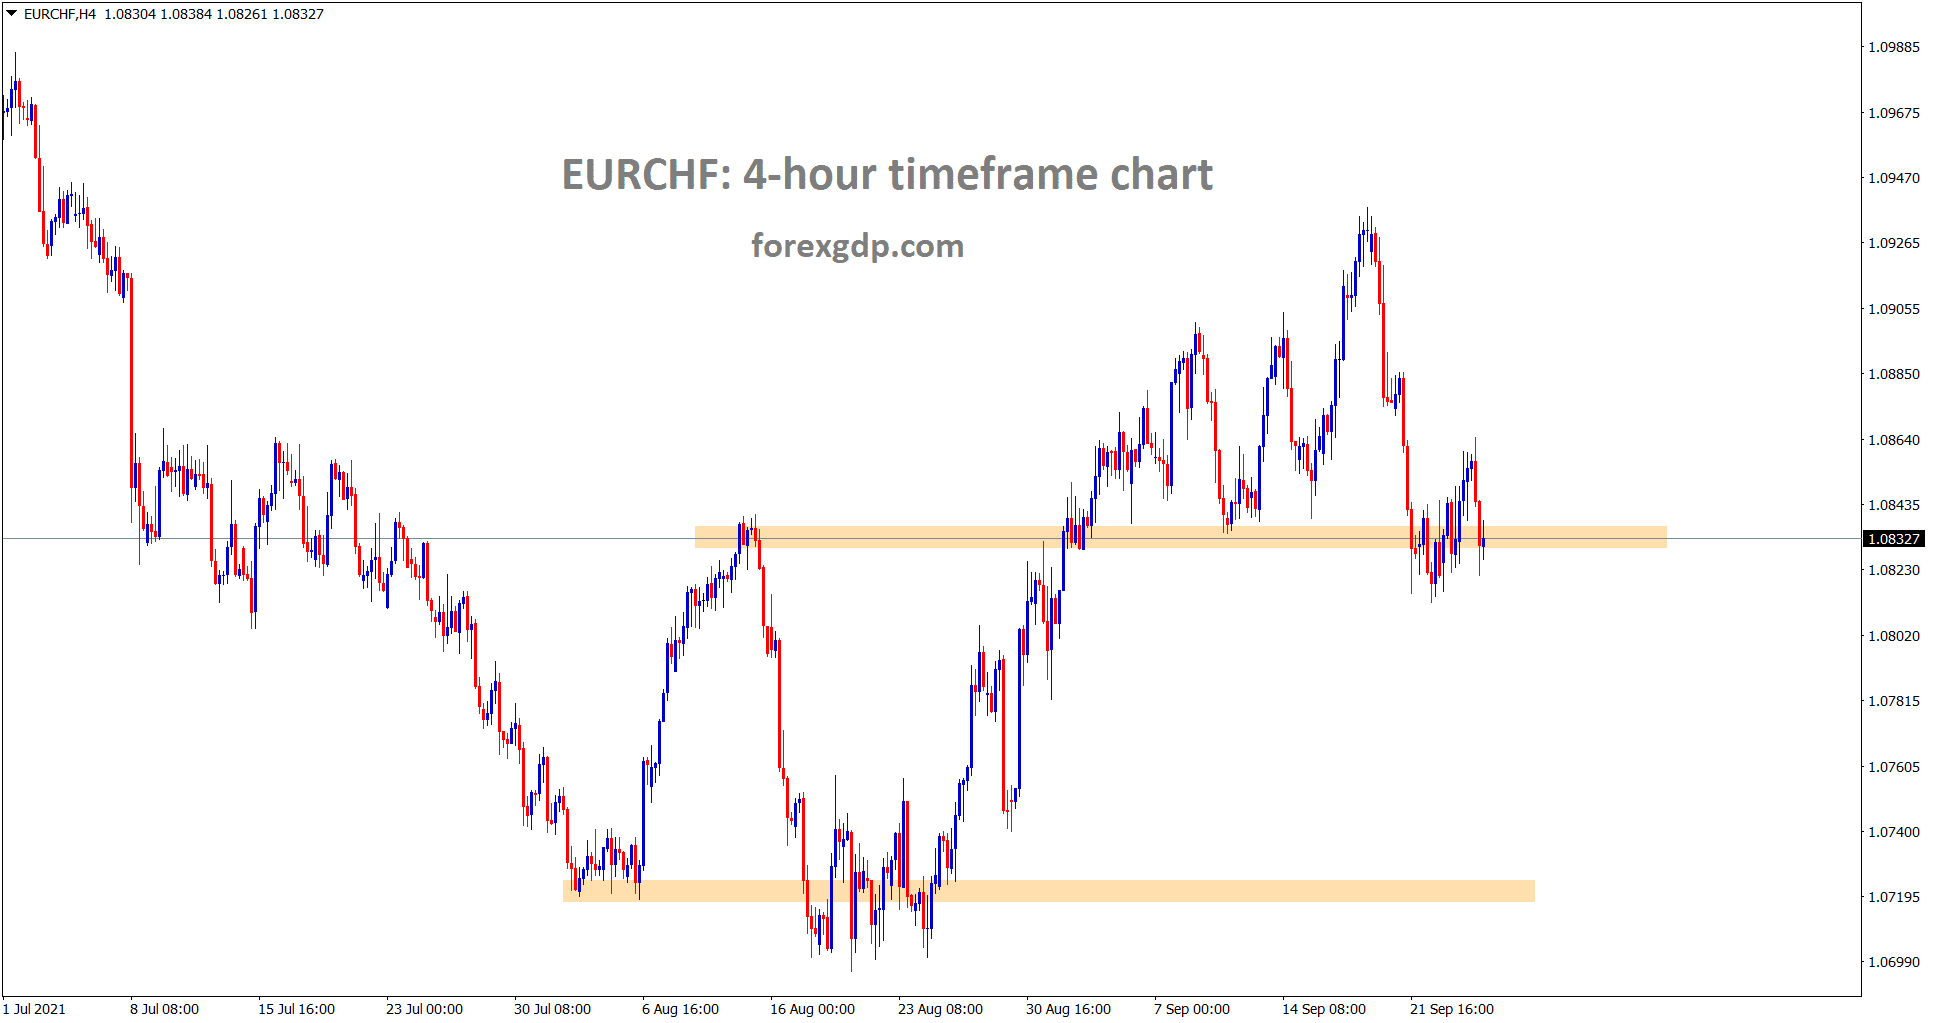 EURCHF is still consolidating at the support area